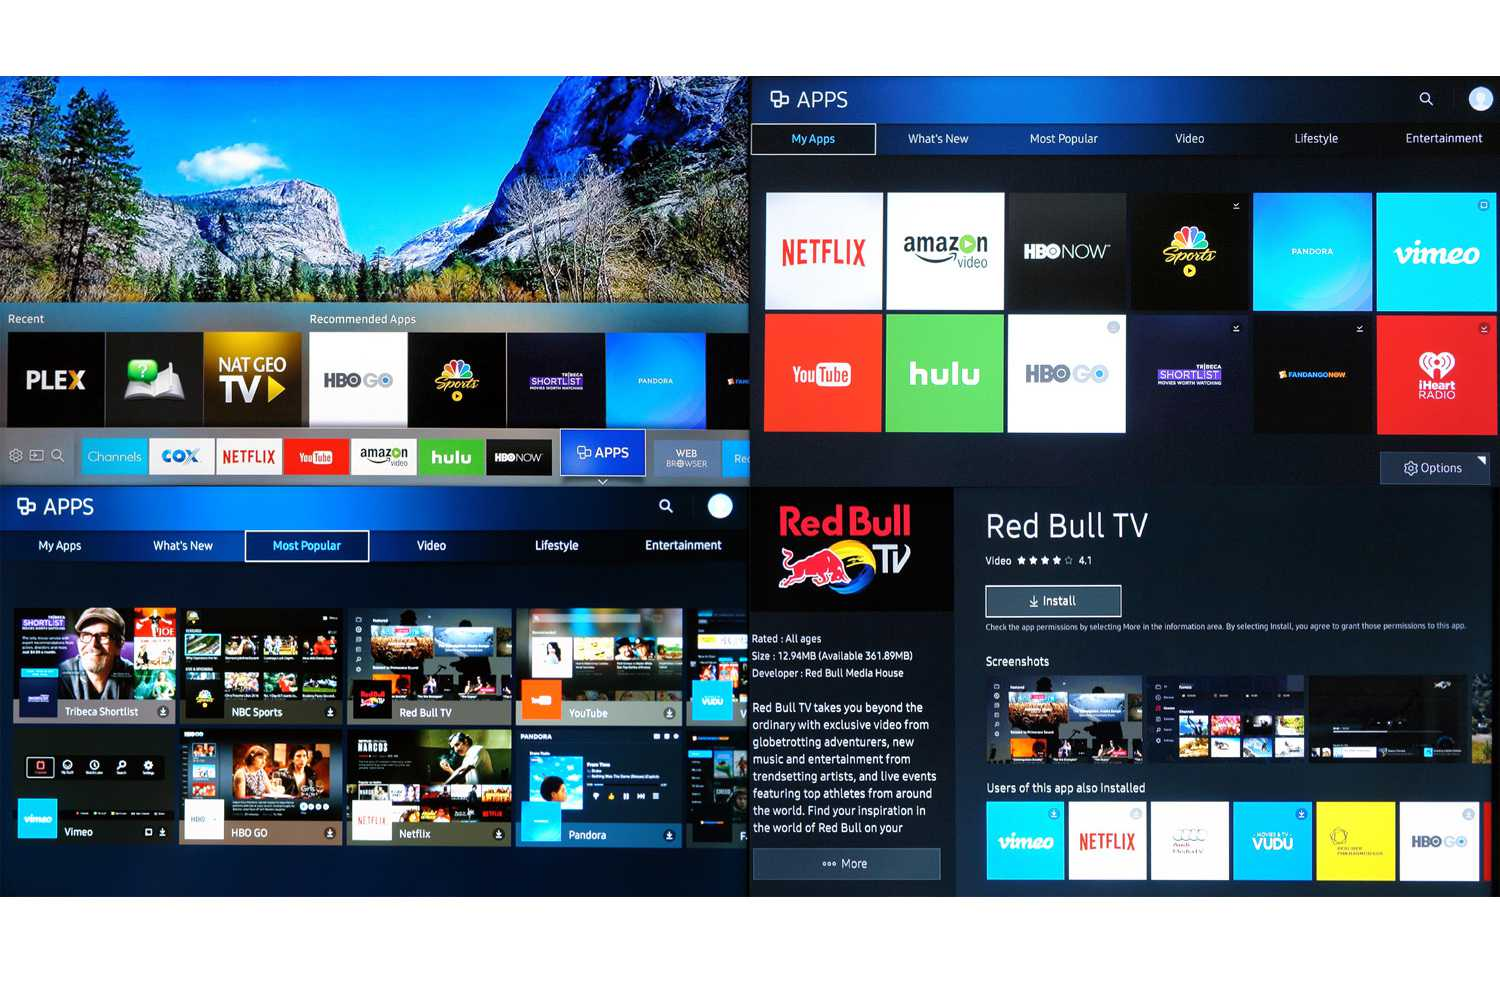 e28cbb913 Samsung UN40KU6300 4K UHD TV - Smart Hub and Apps Menus